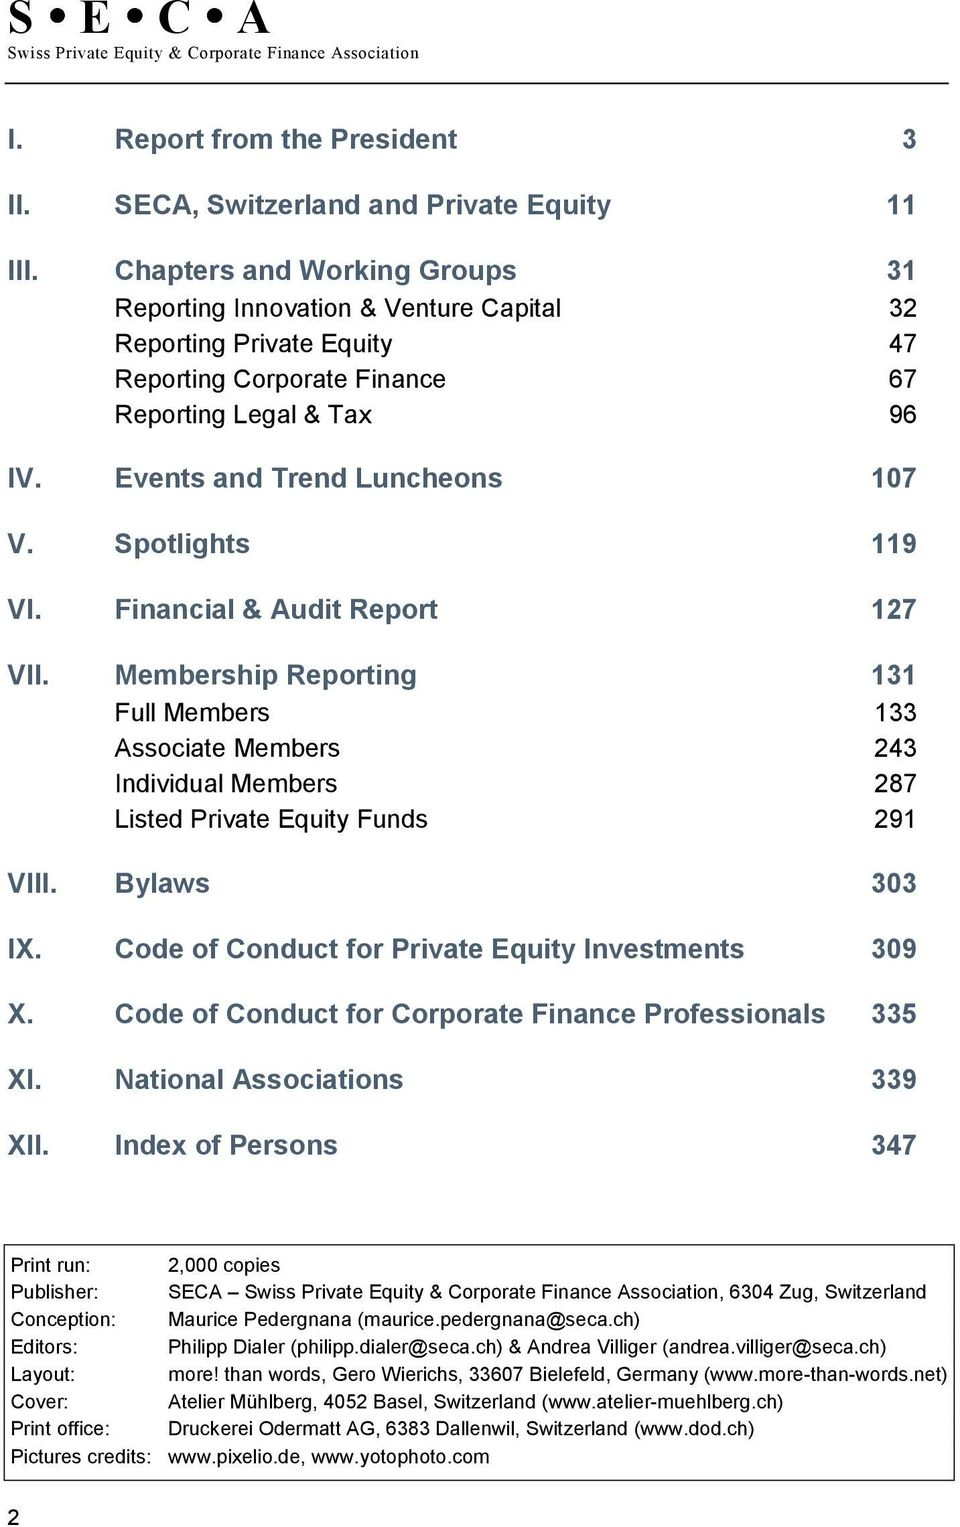 Spotlights 119 VI. Financial & Audit Report 127 VII. Membership Reporting 131 Full Members 133 Associate Members 243 Individual Members 287 Listed Private Equity Funds 291 VIII. Bylaws 303 IX.